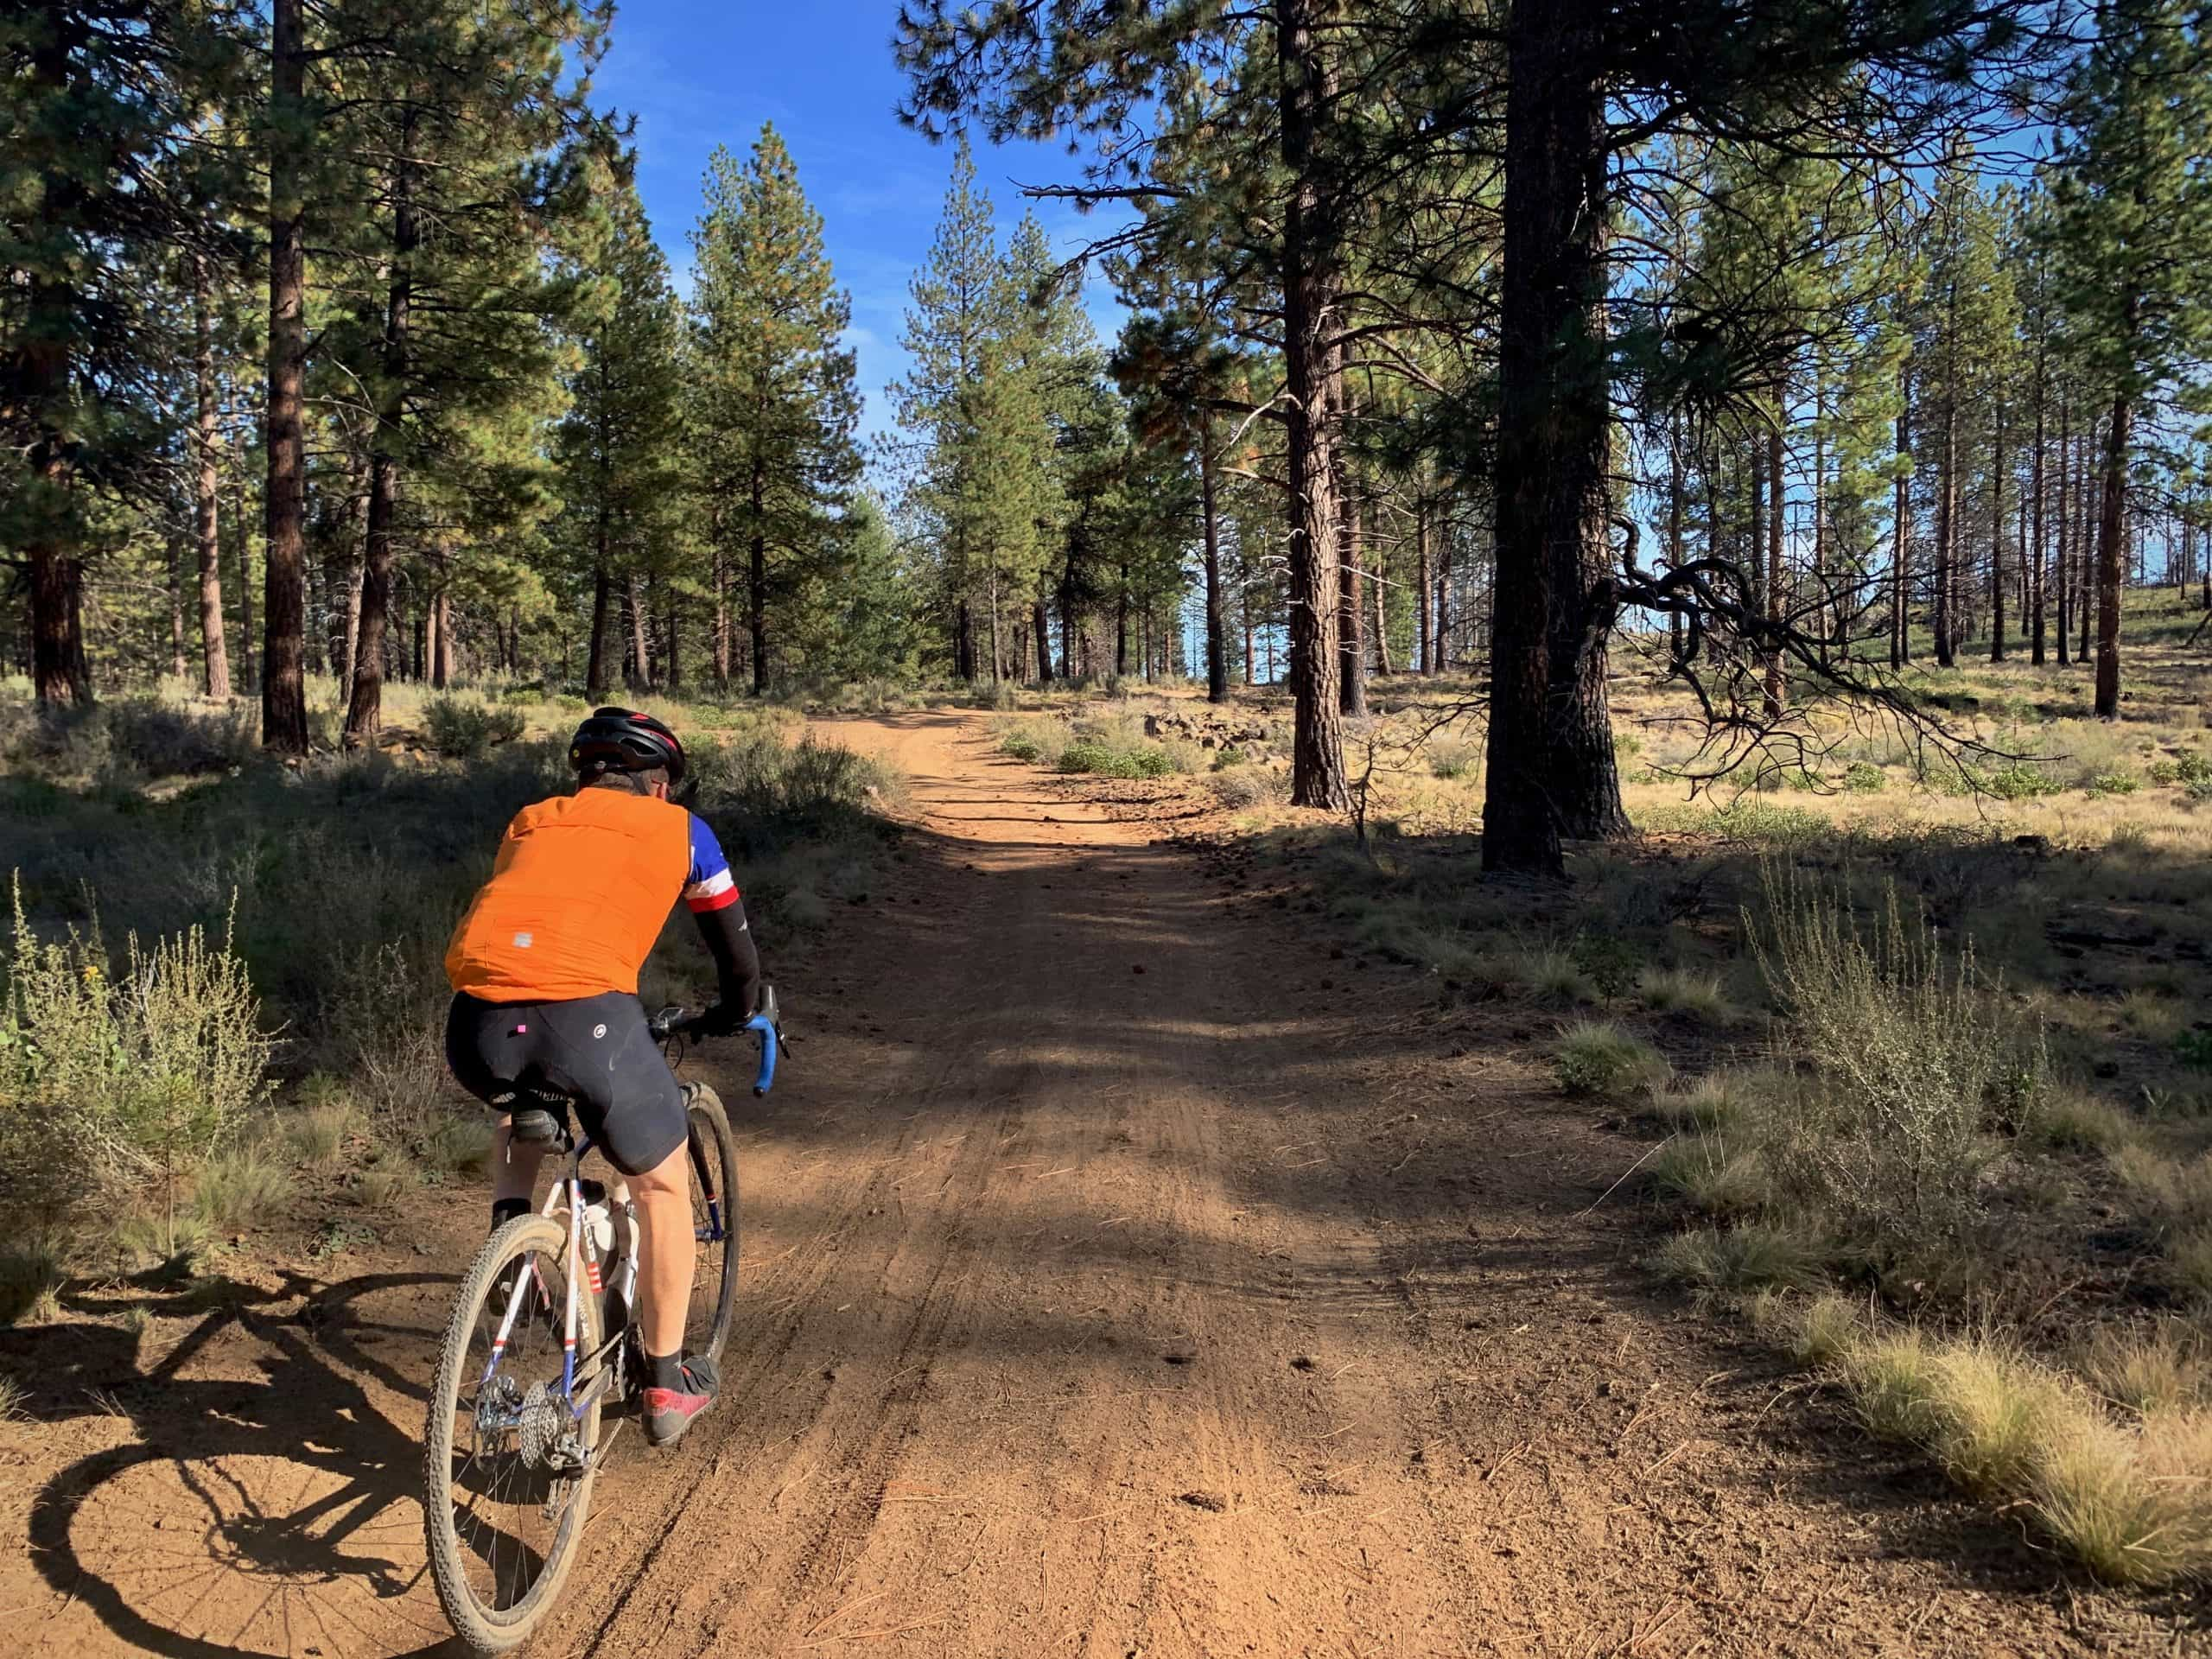 Cyclist on Forest Service road near Phil's Trailhead in Bend, Oregon.